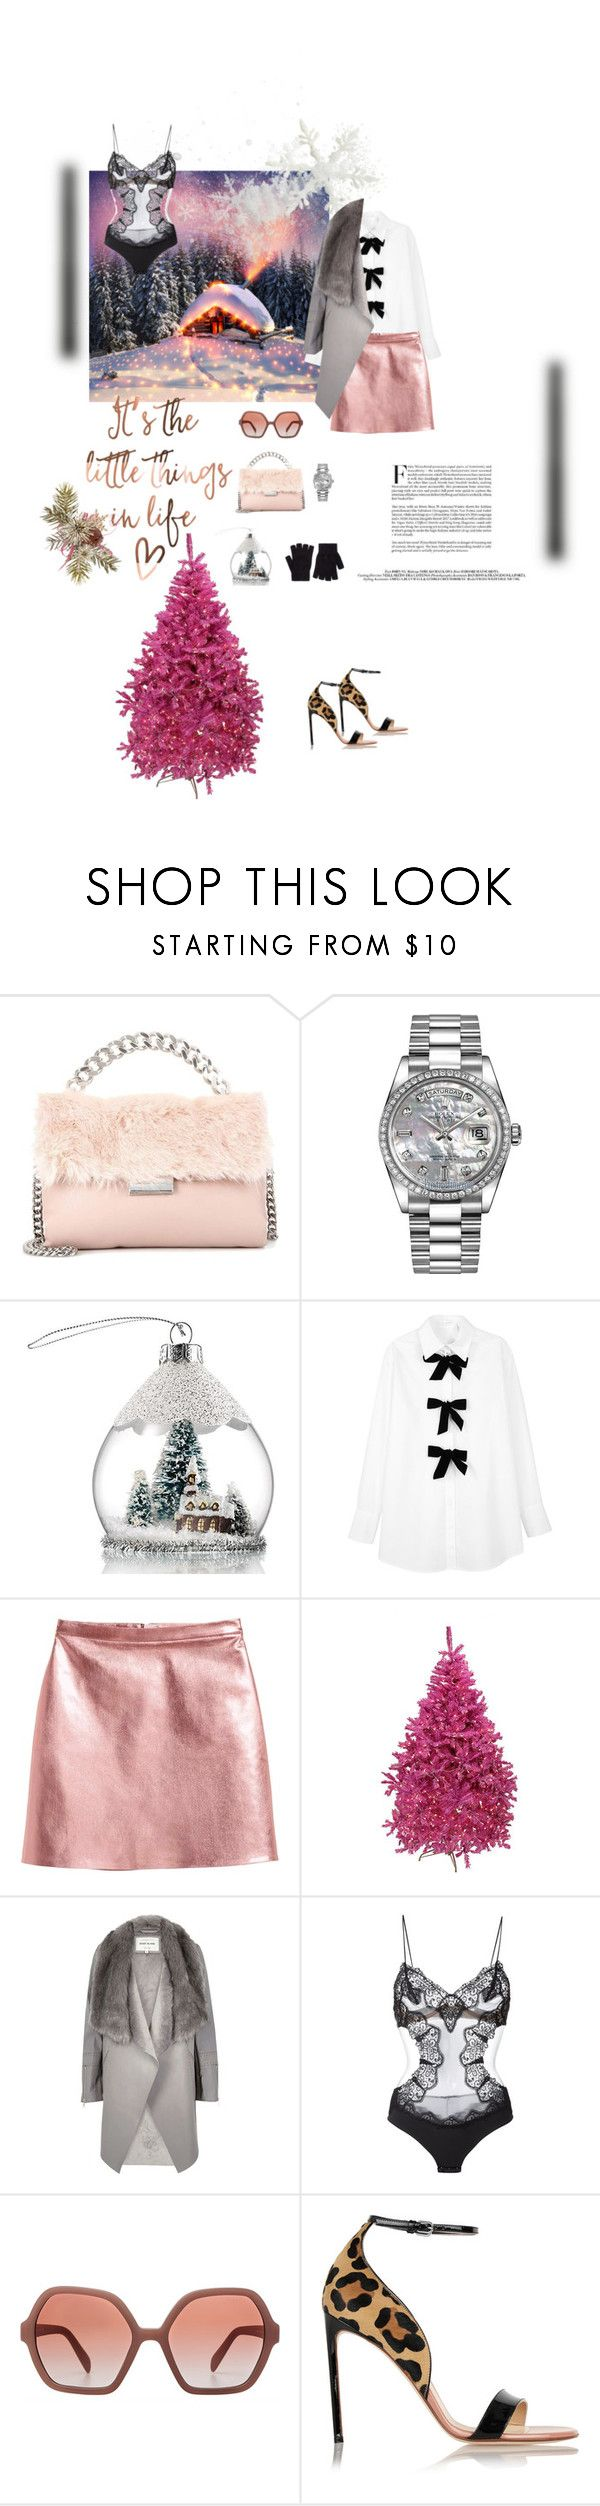 """Untitled #657"" by xocolate ❤ liked on Polyvore featuring STELLA McCARTNEY, Rolex, Avon, See by Chloé, River Island, La Perla, Prada, Francesco Russo and Accessorize"